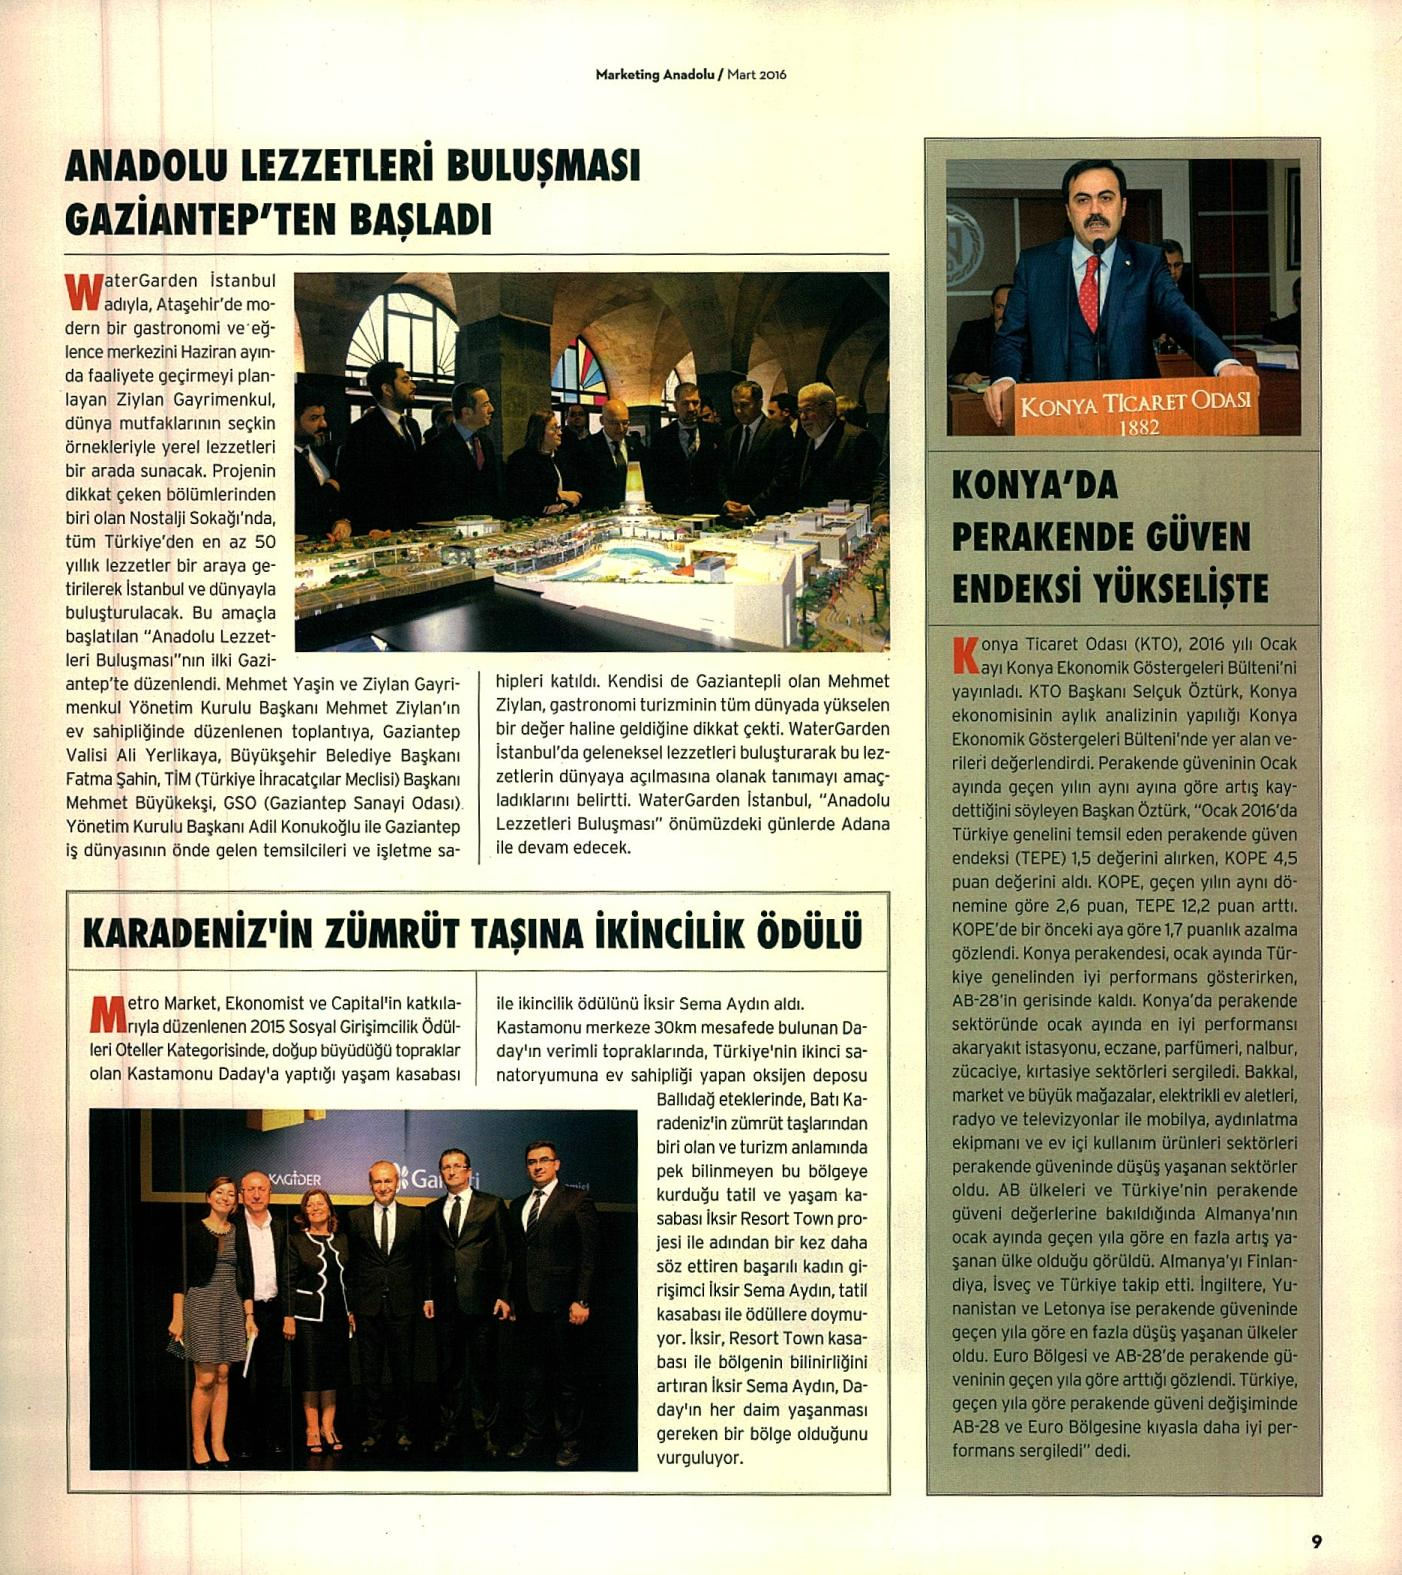 Marketing Türkiye Dergisi, Marketing Anadolu - 1 Mart 2016